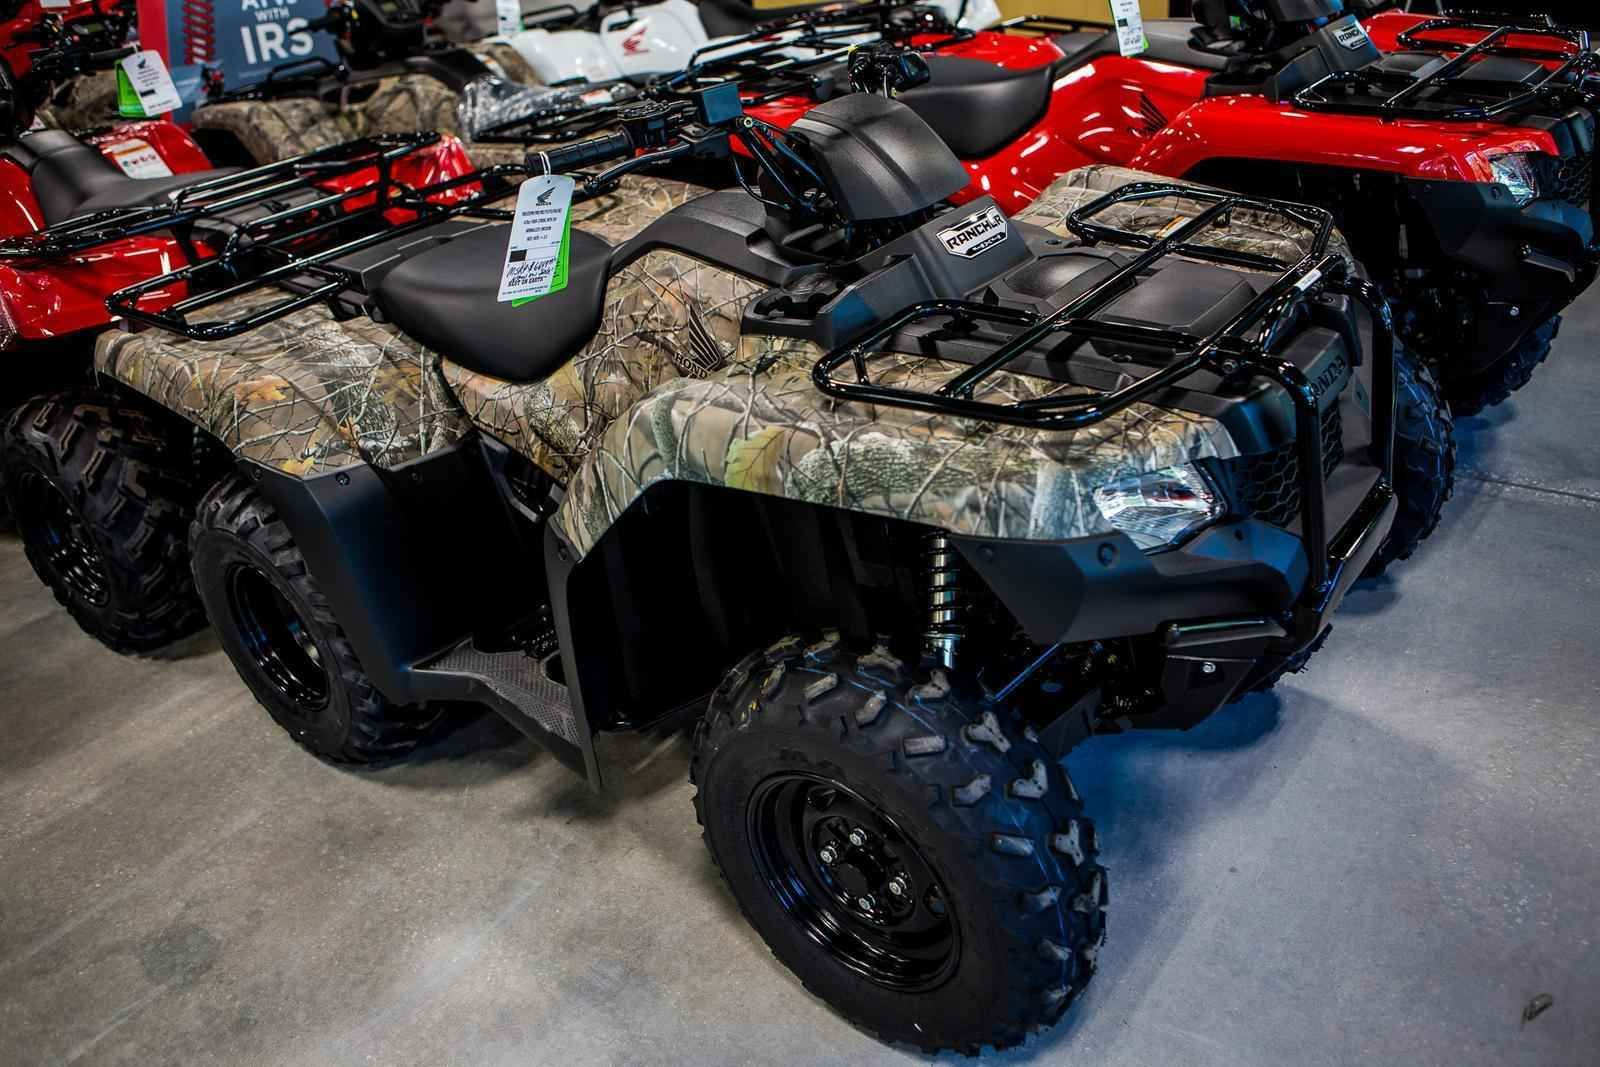 New 2017 Honda FOURTRAX RANCHER 4X4 ATVs For Sale in Florida. 2017 HONDA FOURTRAX RANCHER 4X4, RC Hill Sale Prices Going on Now. EZ Financing. We accept trade-ins. Upgrade your ride today? RC Hill will take trade-ins year round. Top dollar paid Regardless of Year, Miles or Condition. This month-owned inventory. We will Buy yours even if you don't Buy ours. We will take any make of motorcycle, ATV, side-by-side, watercraft,Autos or Generators. We can provide financing, even when others are…